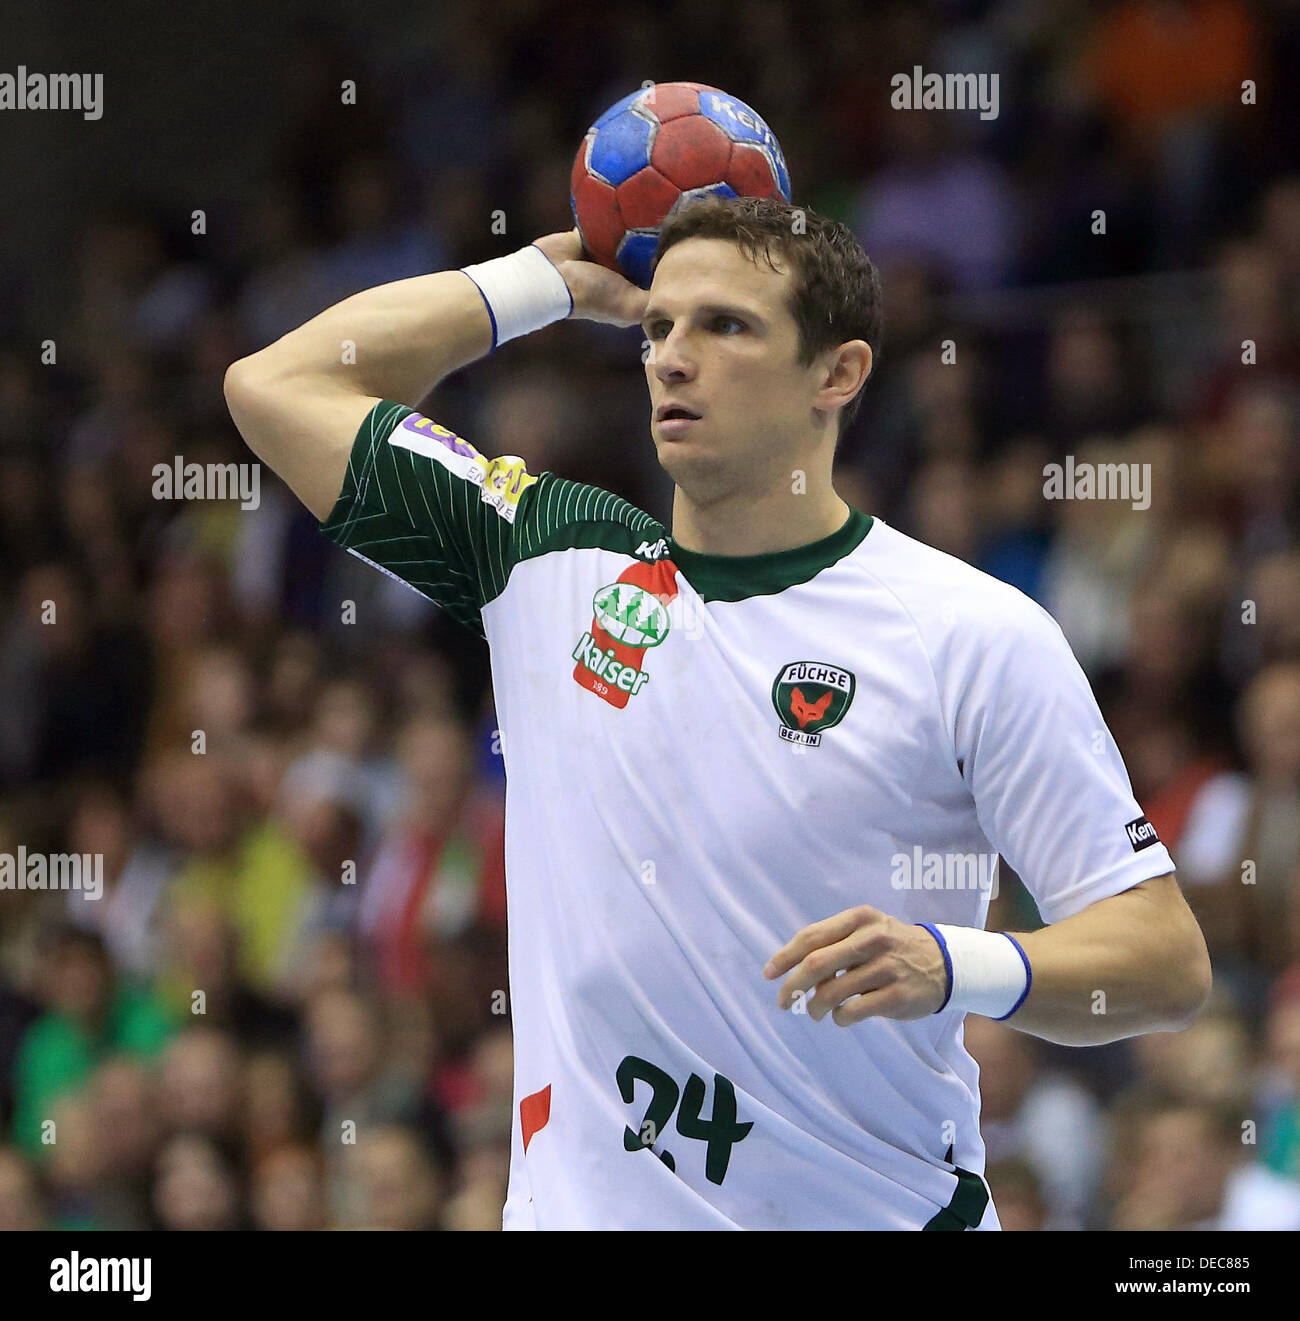 Berlin's Bartlomiej Jaszka in action during the Bundesliga handball match between SC Magdeburg and Fuechse Berlin at Getec-Arena in Magdeburg, Germany, 15 September 2013. Photo:JENS WOLF - Stock Image